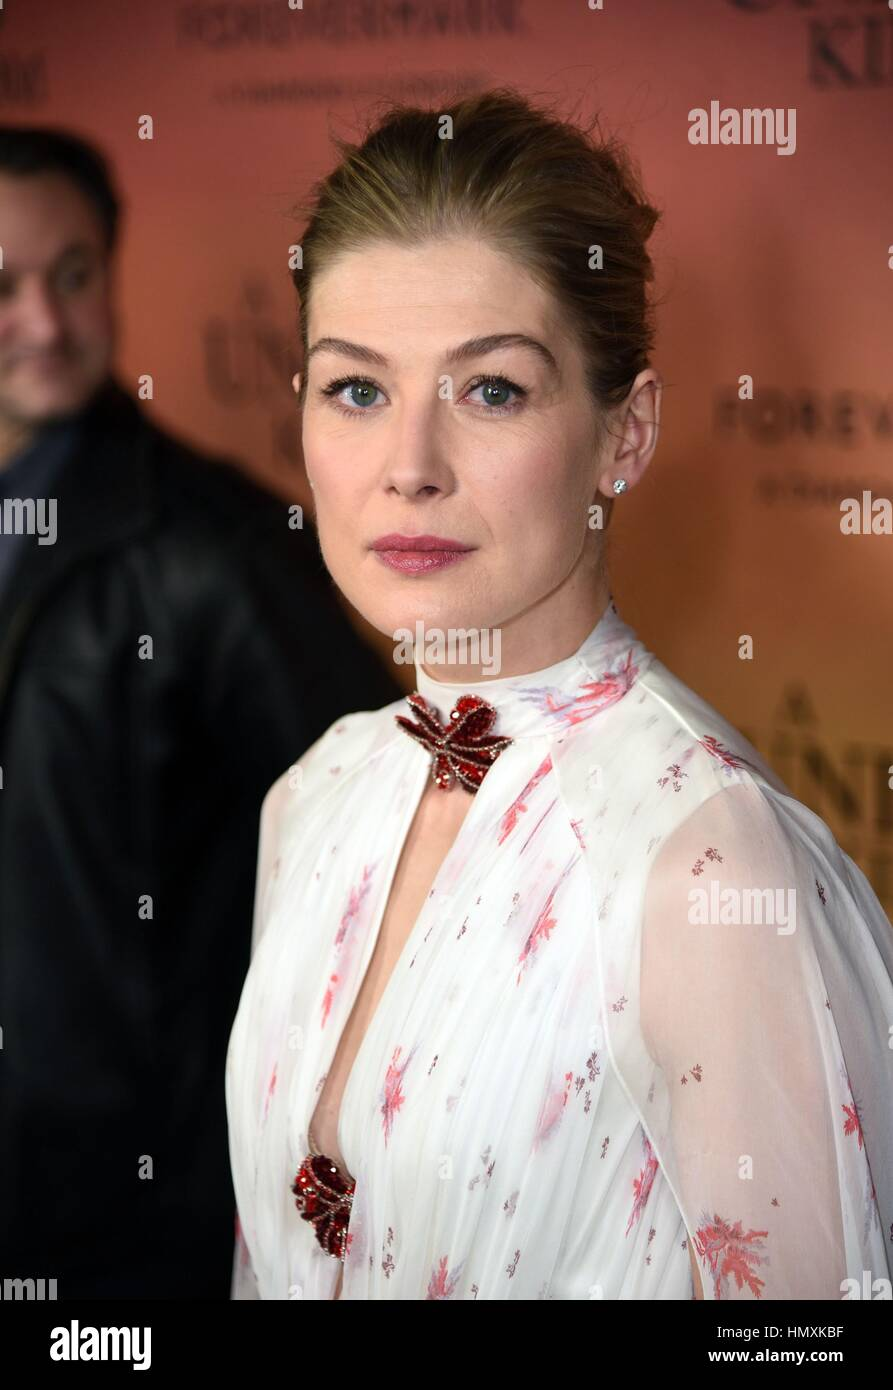 New York, NY, USA. 6th Feb, 2017. Rosamund Pike at arrivals for A UNITED KINGDOM Premiere, The Paris Theatre, New - Stock Image